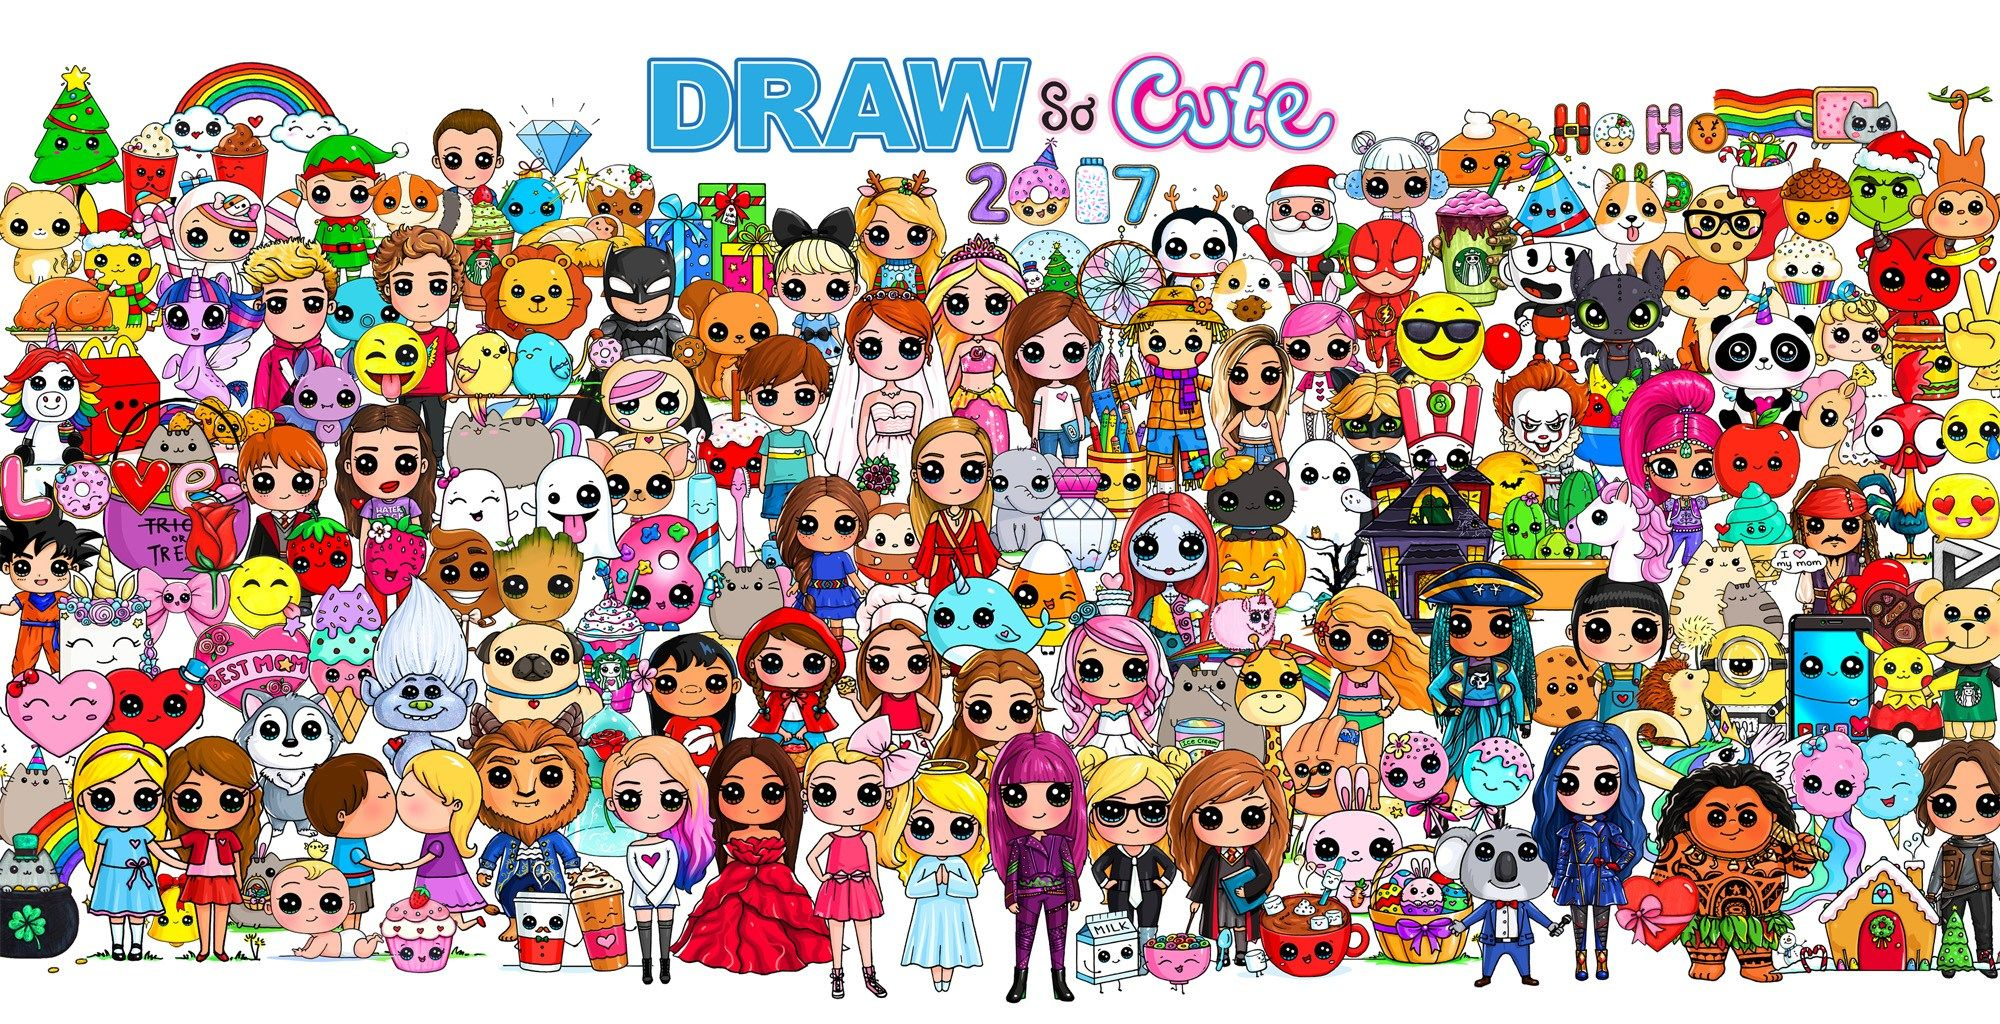 Happy Anniversary Draw So Cute 2017 Characters Cute Drawings Poster Drawing Cute Poster